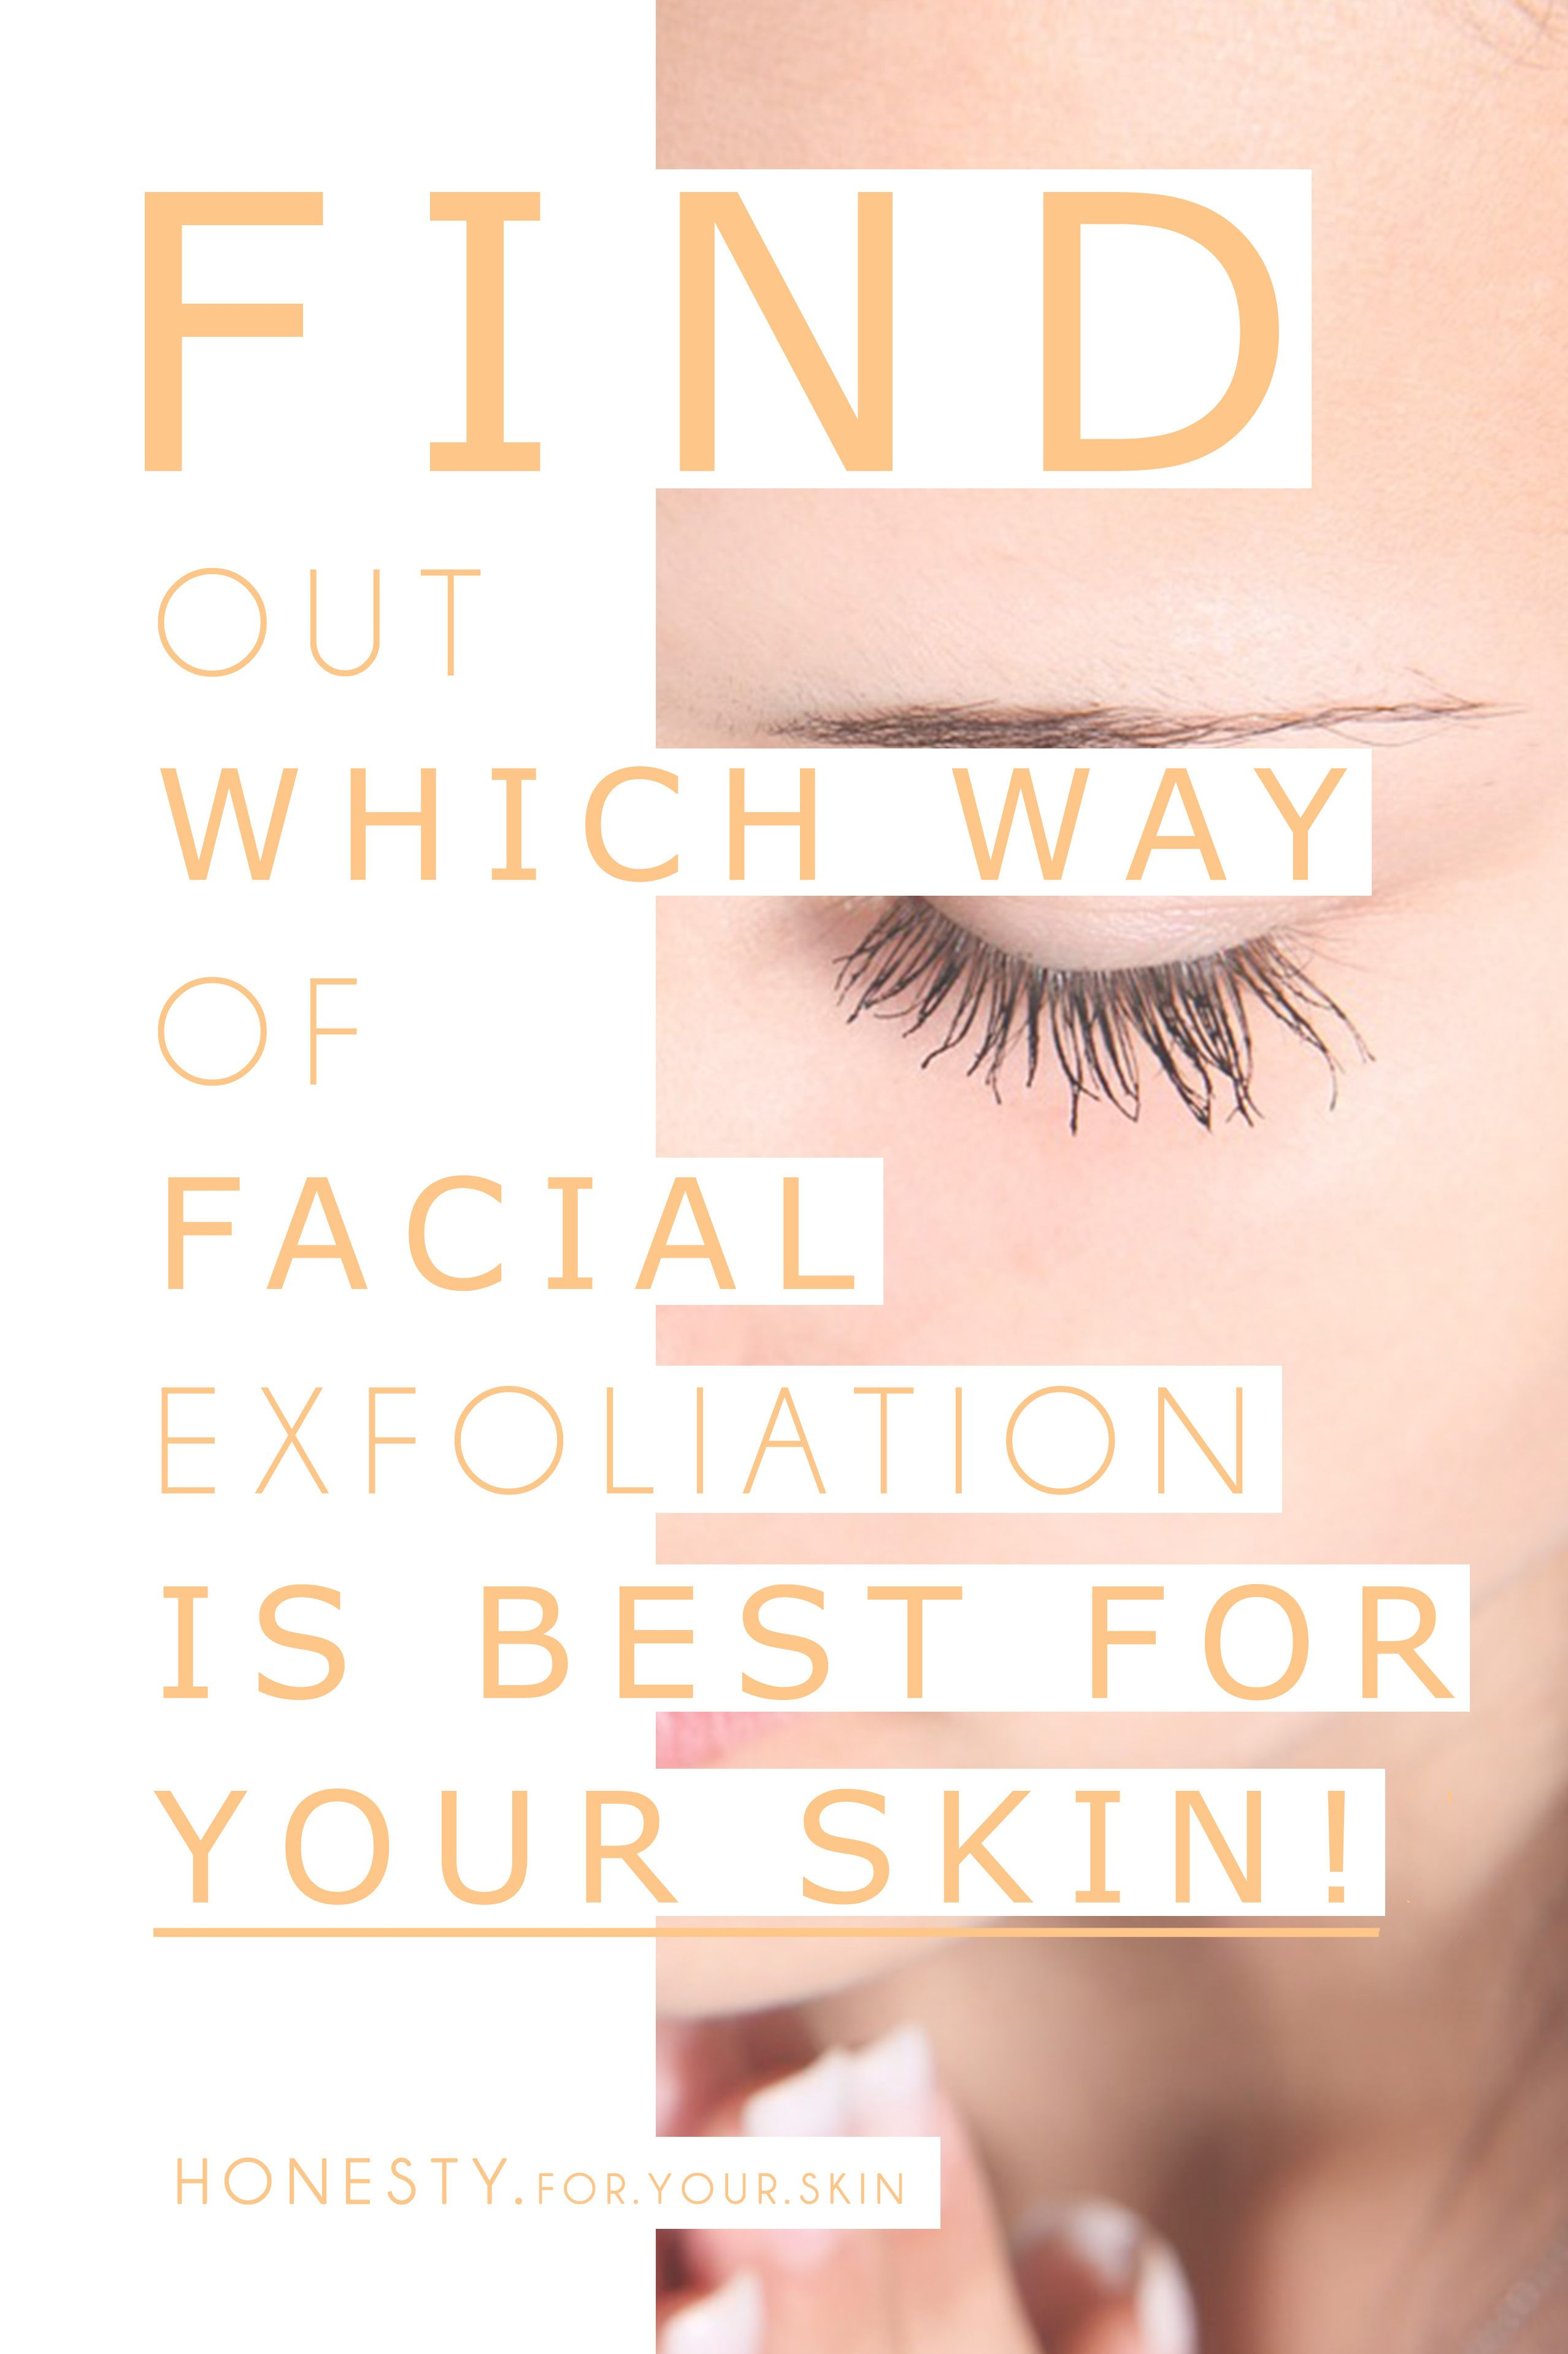 There's a BILLION choices out there when it comes to SKINCARE. This is the ULTIMATE guide you will ever need to help you choose which facial exfoliate is BEST for your awesome skin!